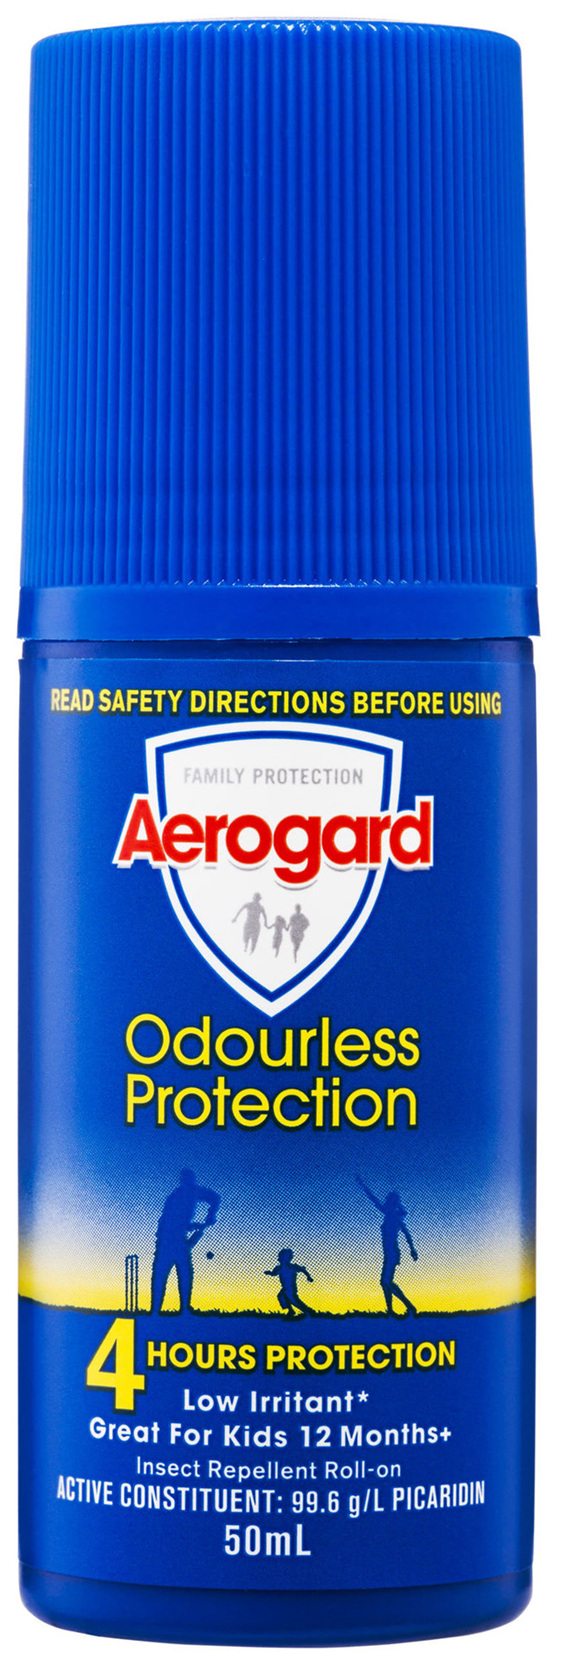 Aerogard Odourless Protection Insect Repellent Roll On 50ml